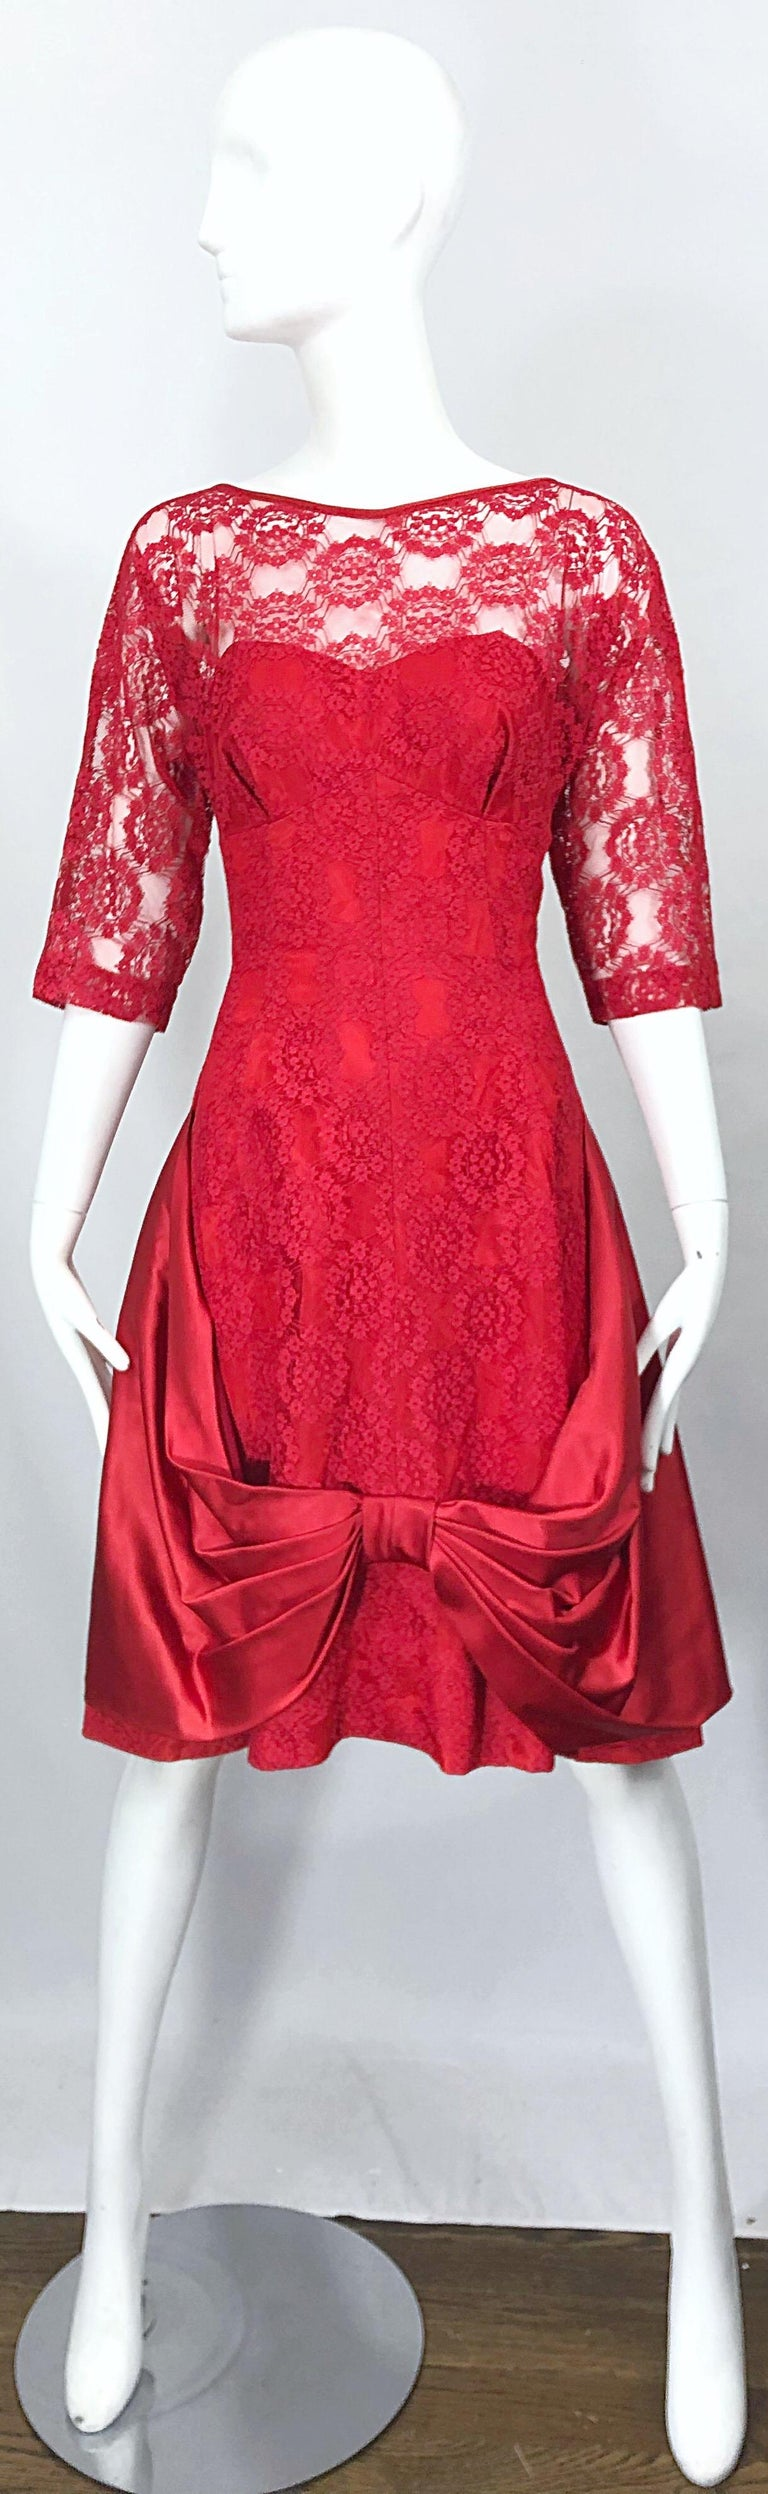 1950s Demi Couture Lips Stick Red Silk Lace 3/4 Sleeve Vintage 50s Dress For Sale 10